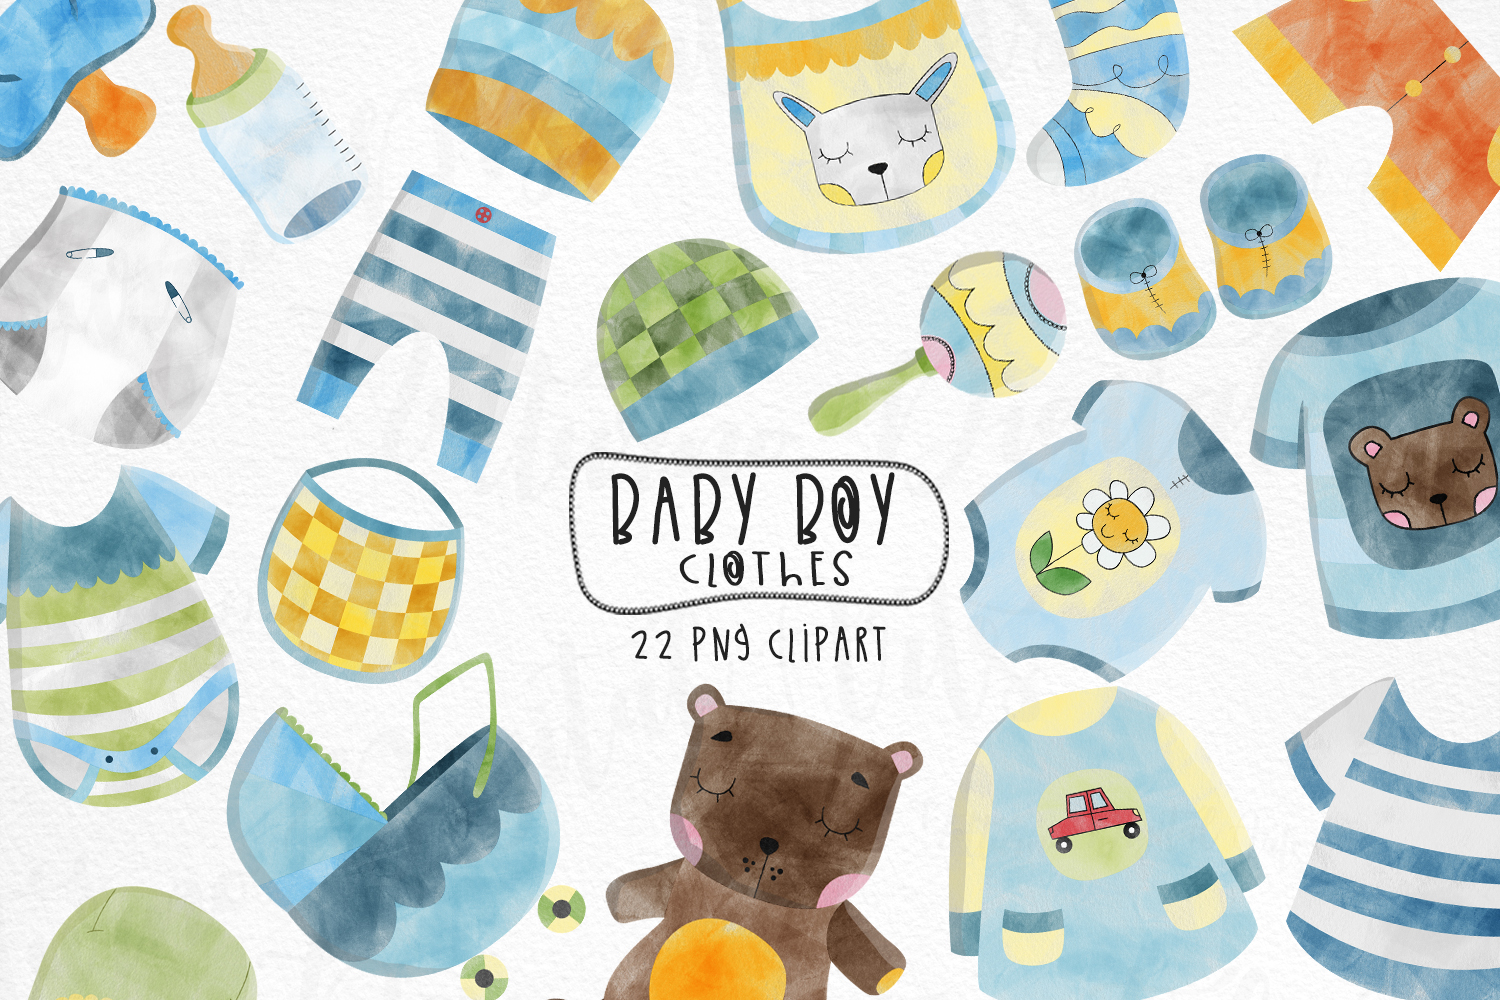 Watercolor Baby Boy Clothes Clipart SVG File